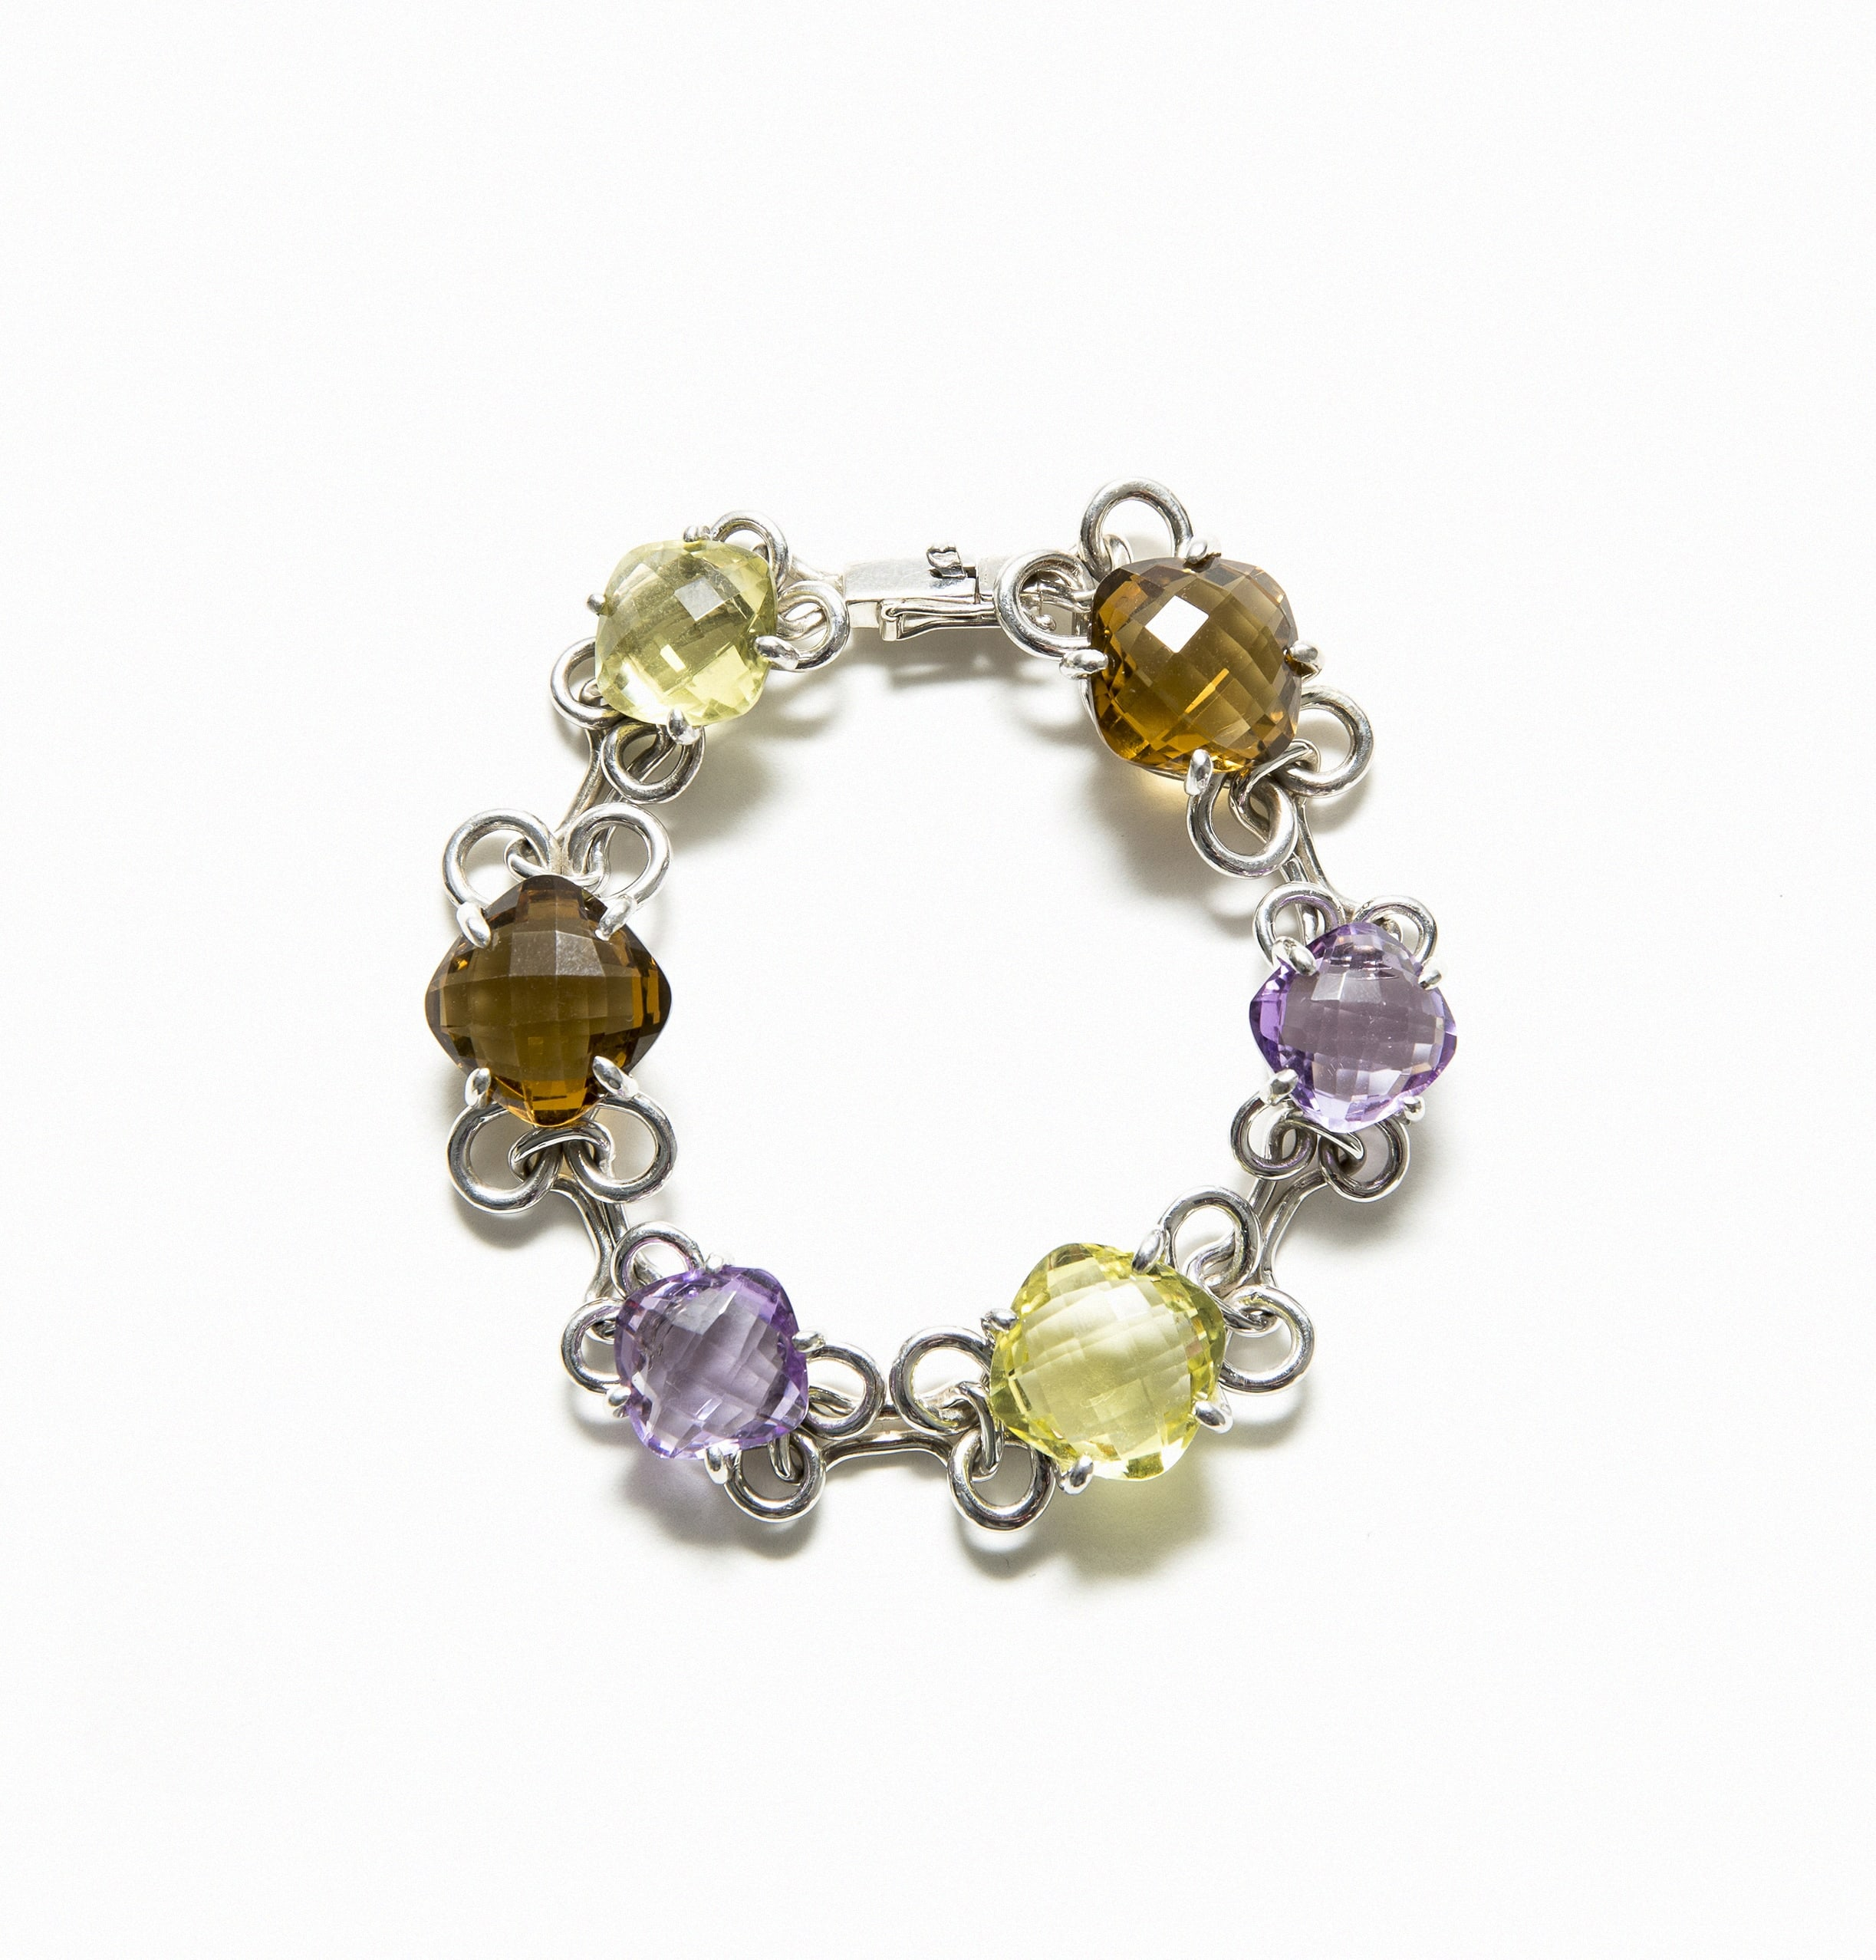 Articulated silver bracelet with Lemon, smoky and amethyst quartz